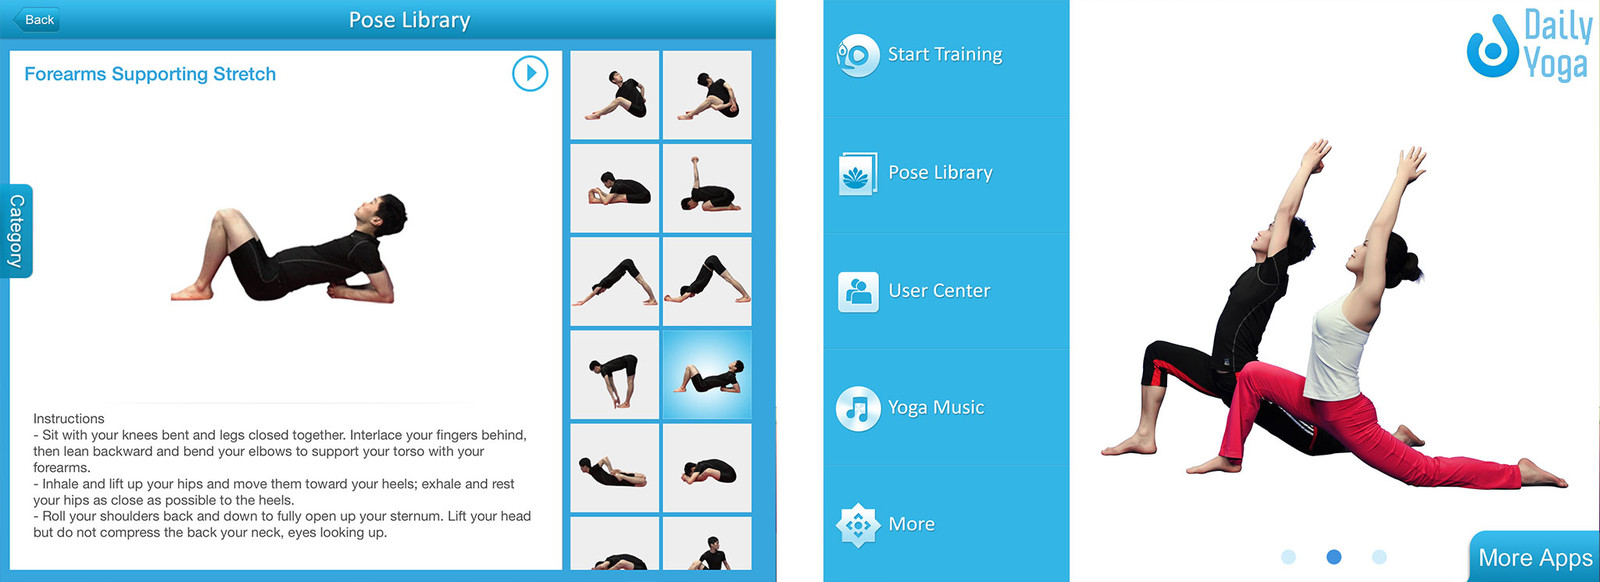 Best yoga apps for iPad: Daily Yoga